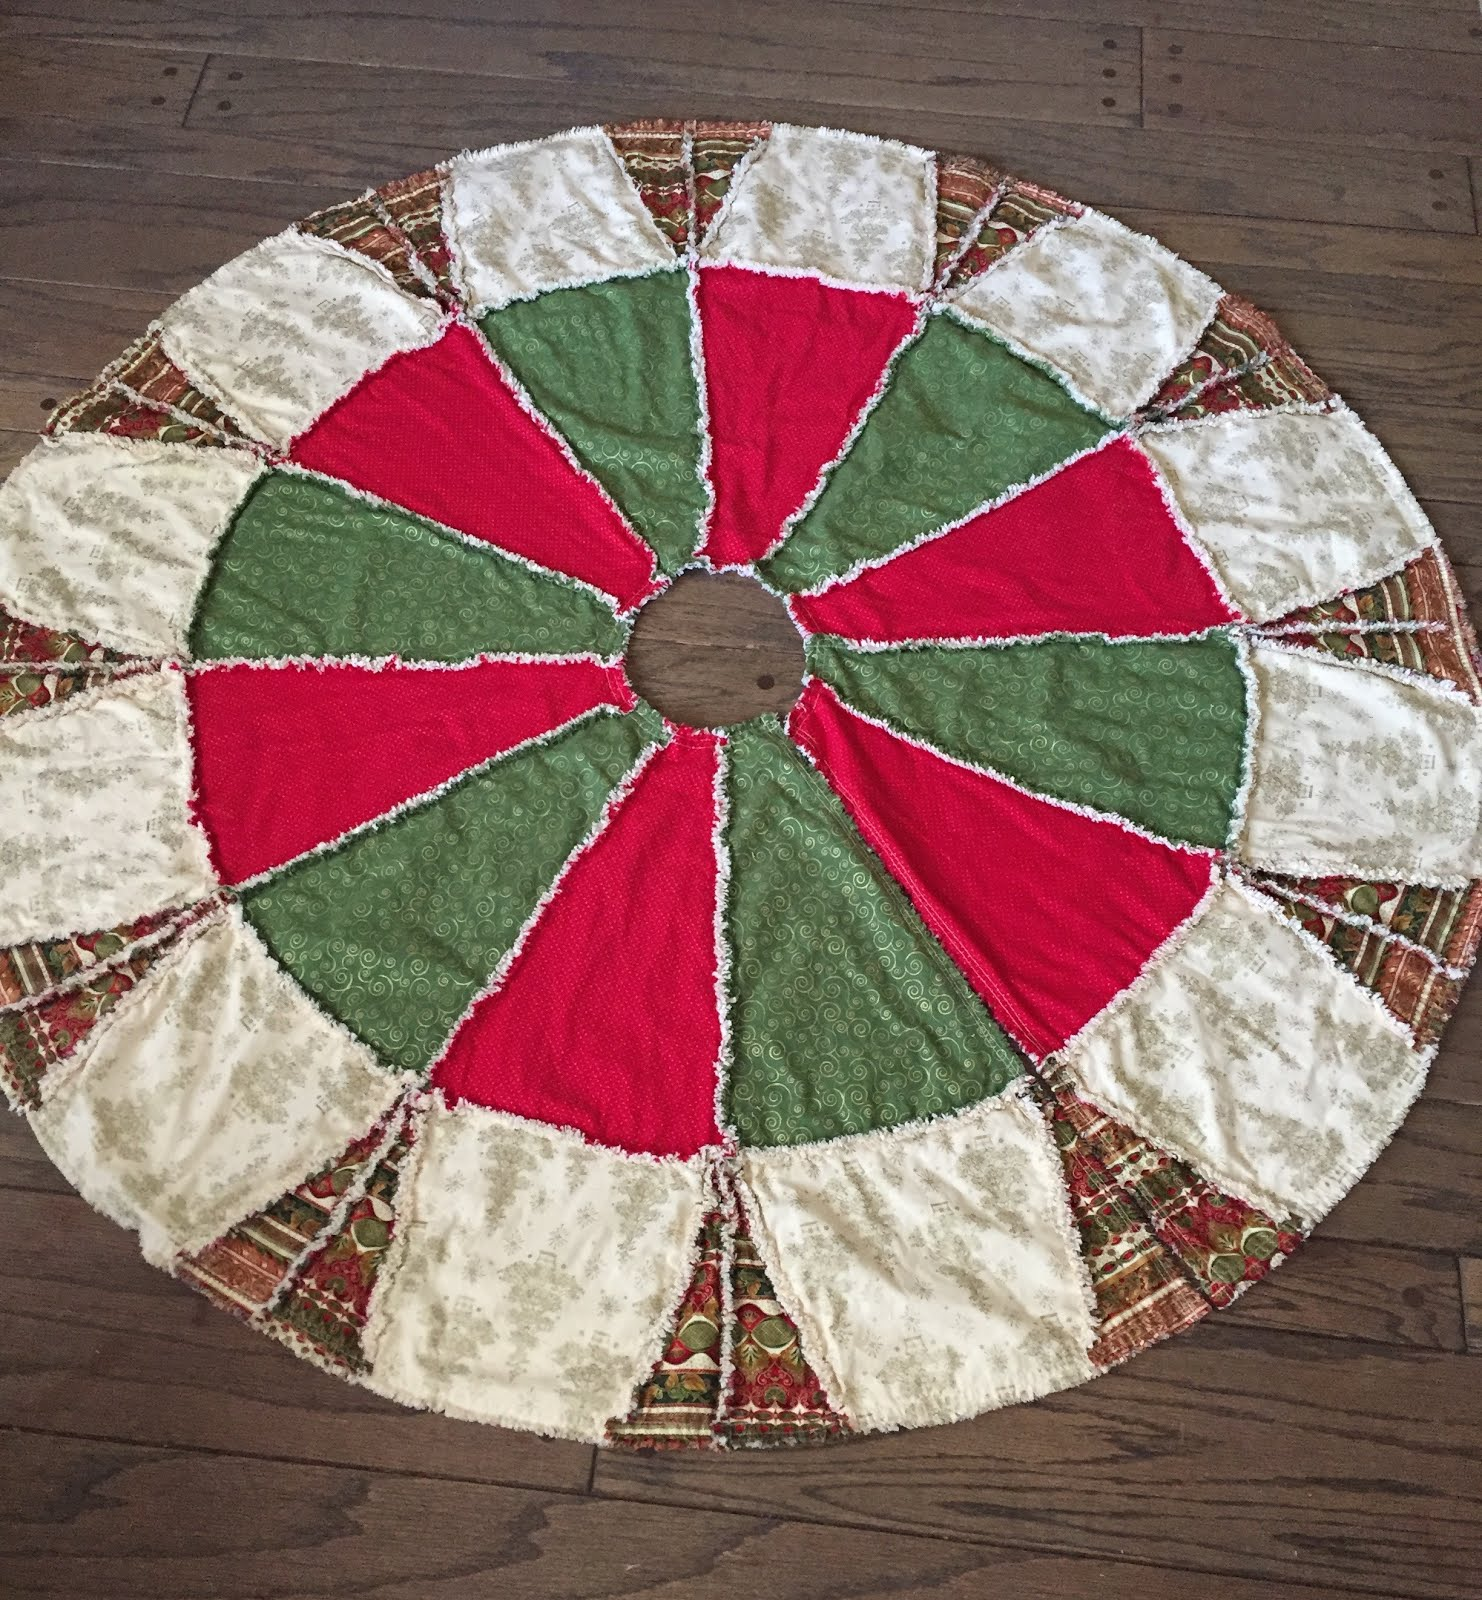 Quilted Christmas Tree Skirt Pinterest : ZeedleBeez: Christmas Finishes